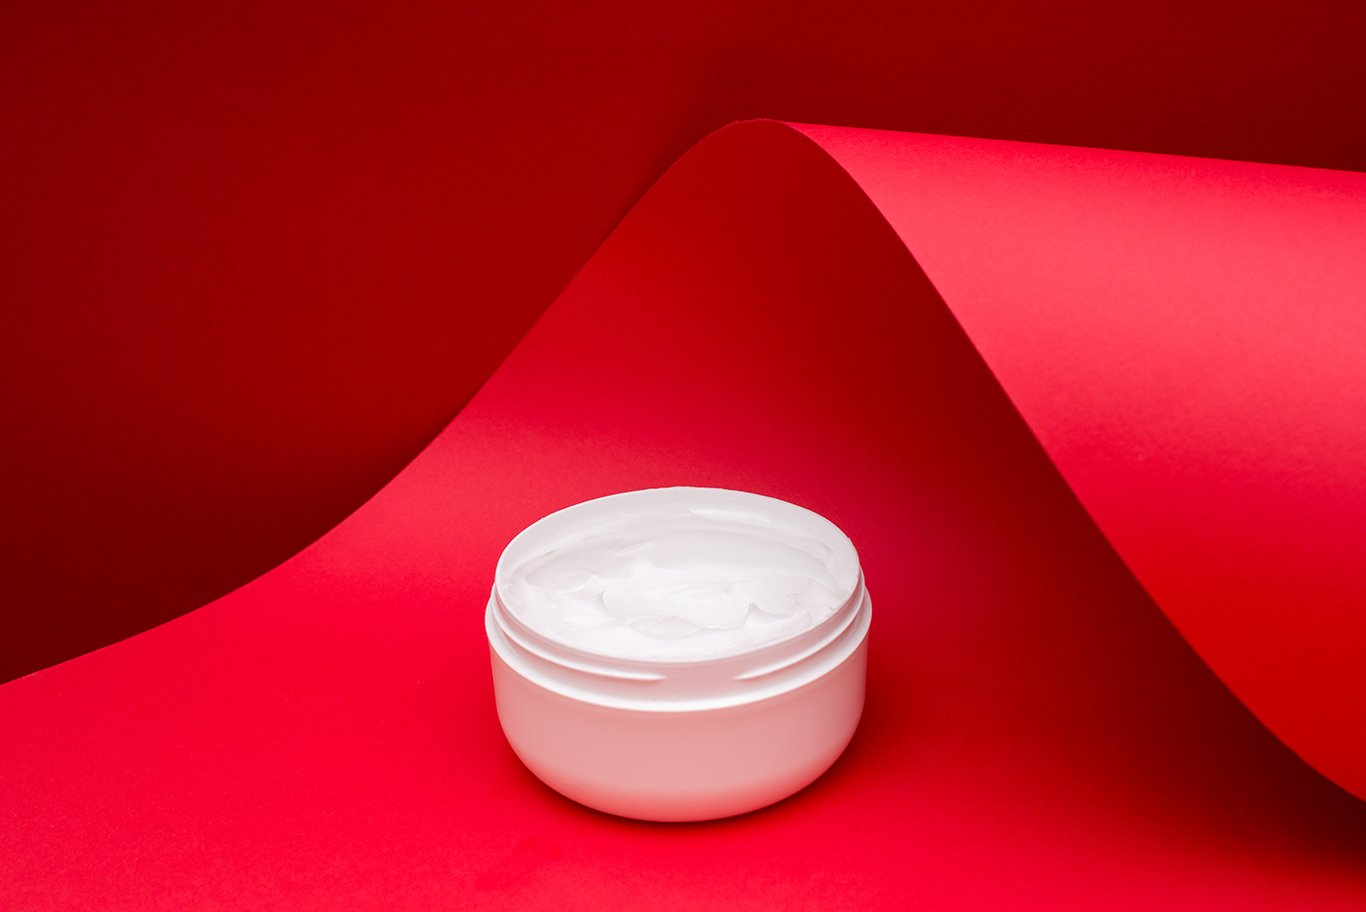 jar of beauty cream on red wave paper background example image 1